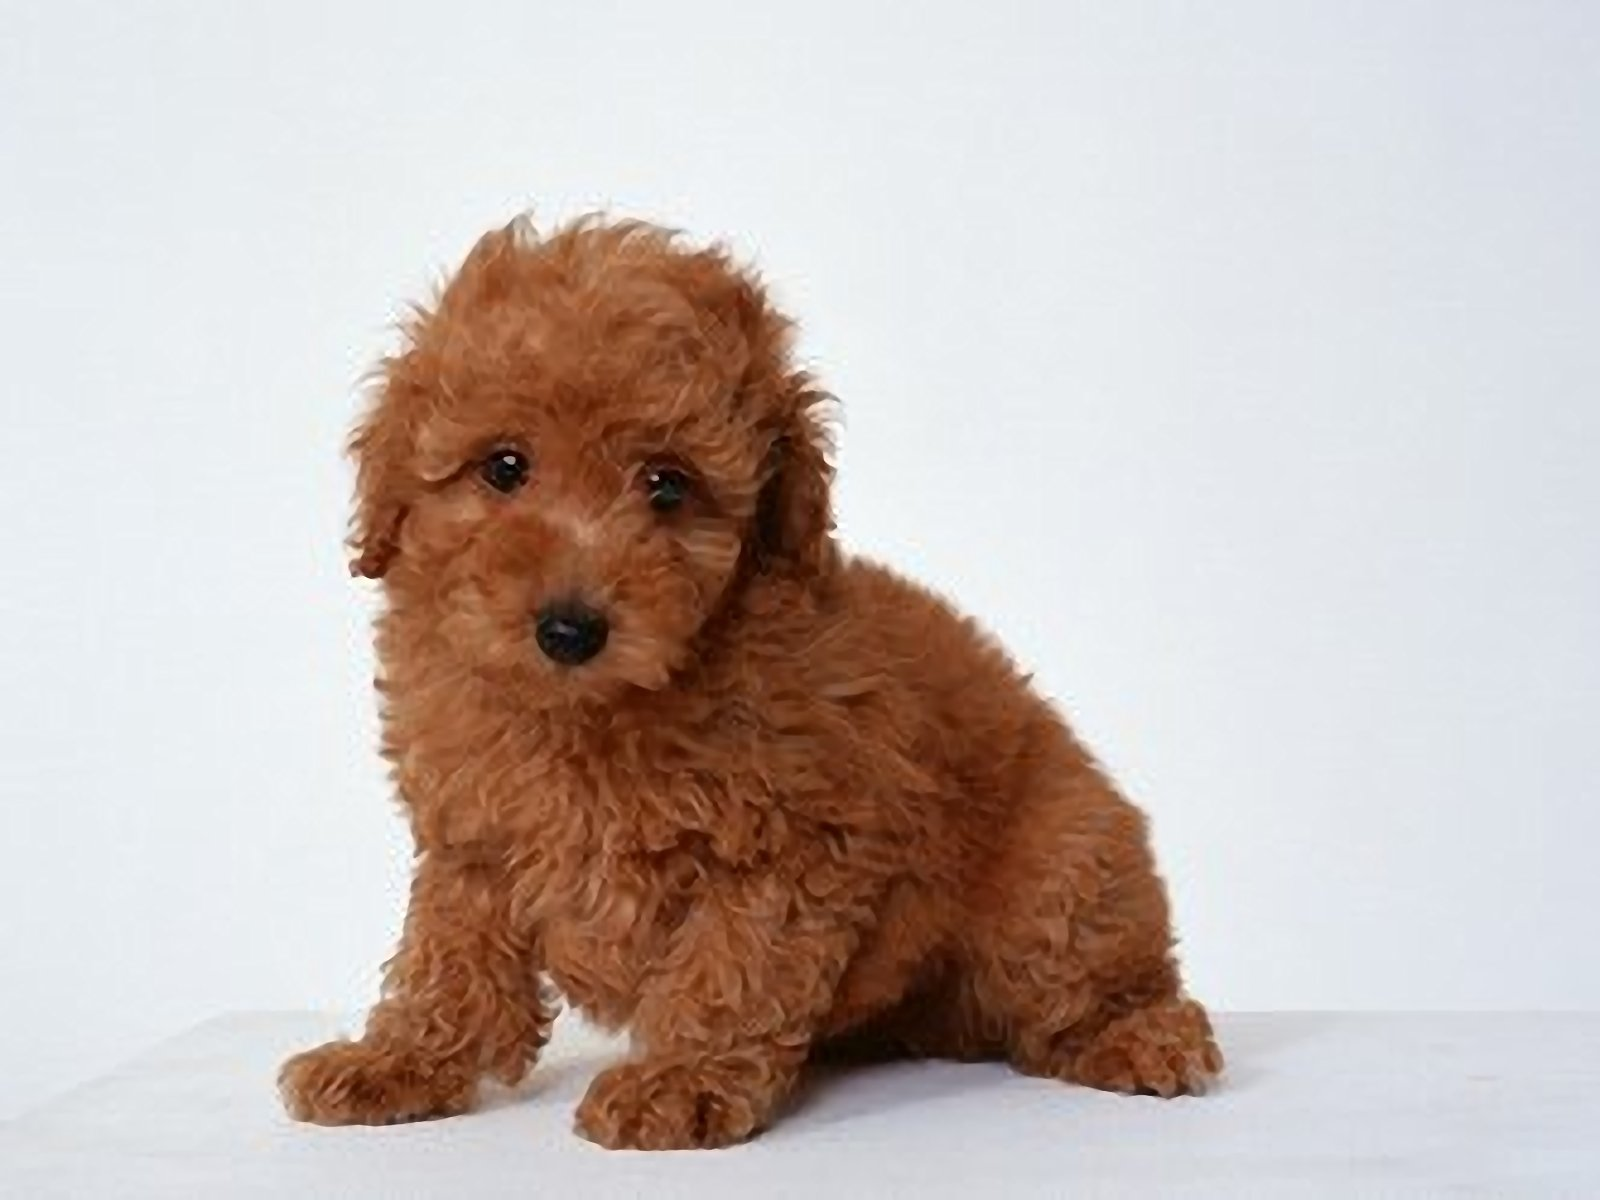 Poodle Lovely 1600x1200 WallpapersPoodle 1600x1200 Wallpapers 1600x1200